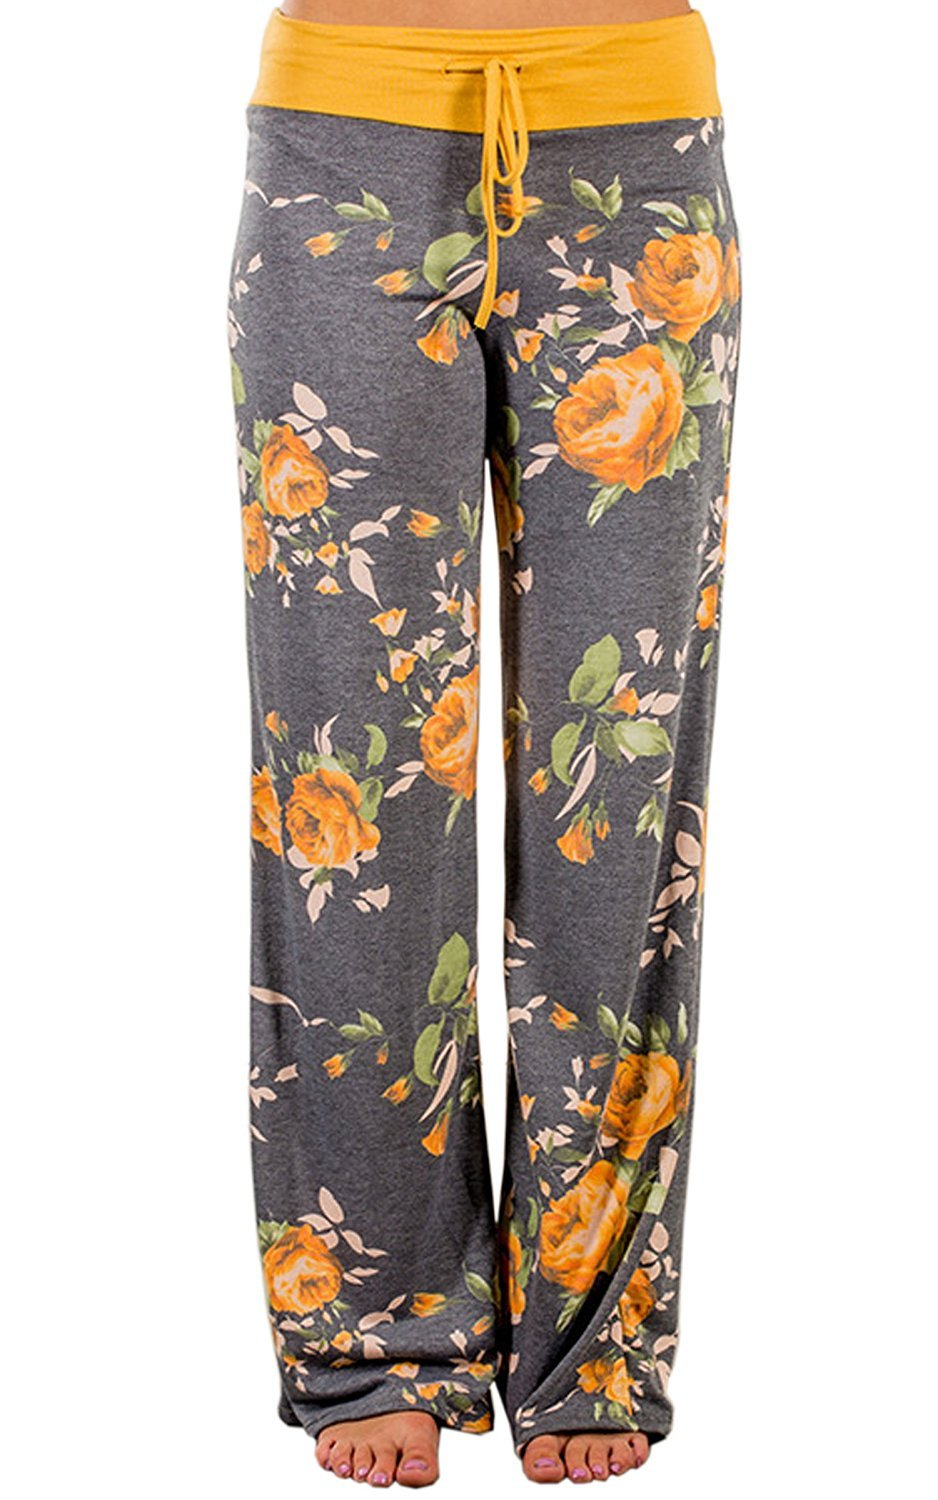 US-straight Women's Floral Print Comfy Stretch Drawstring Palazzo Wide Leg Lounge Pants (S, 0447-Yellow)